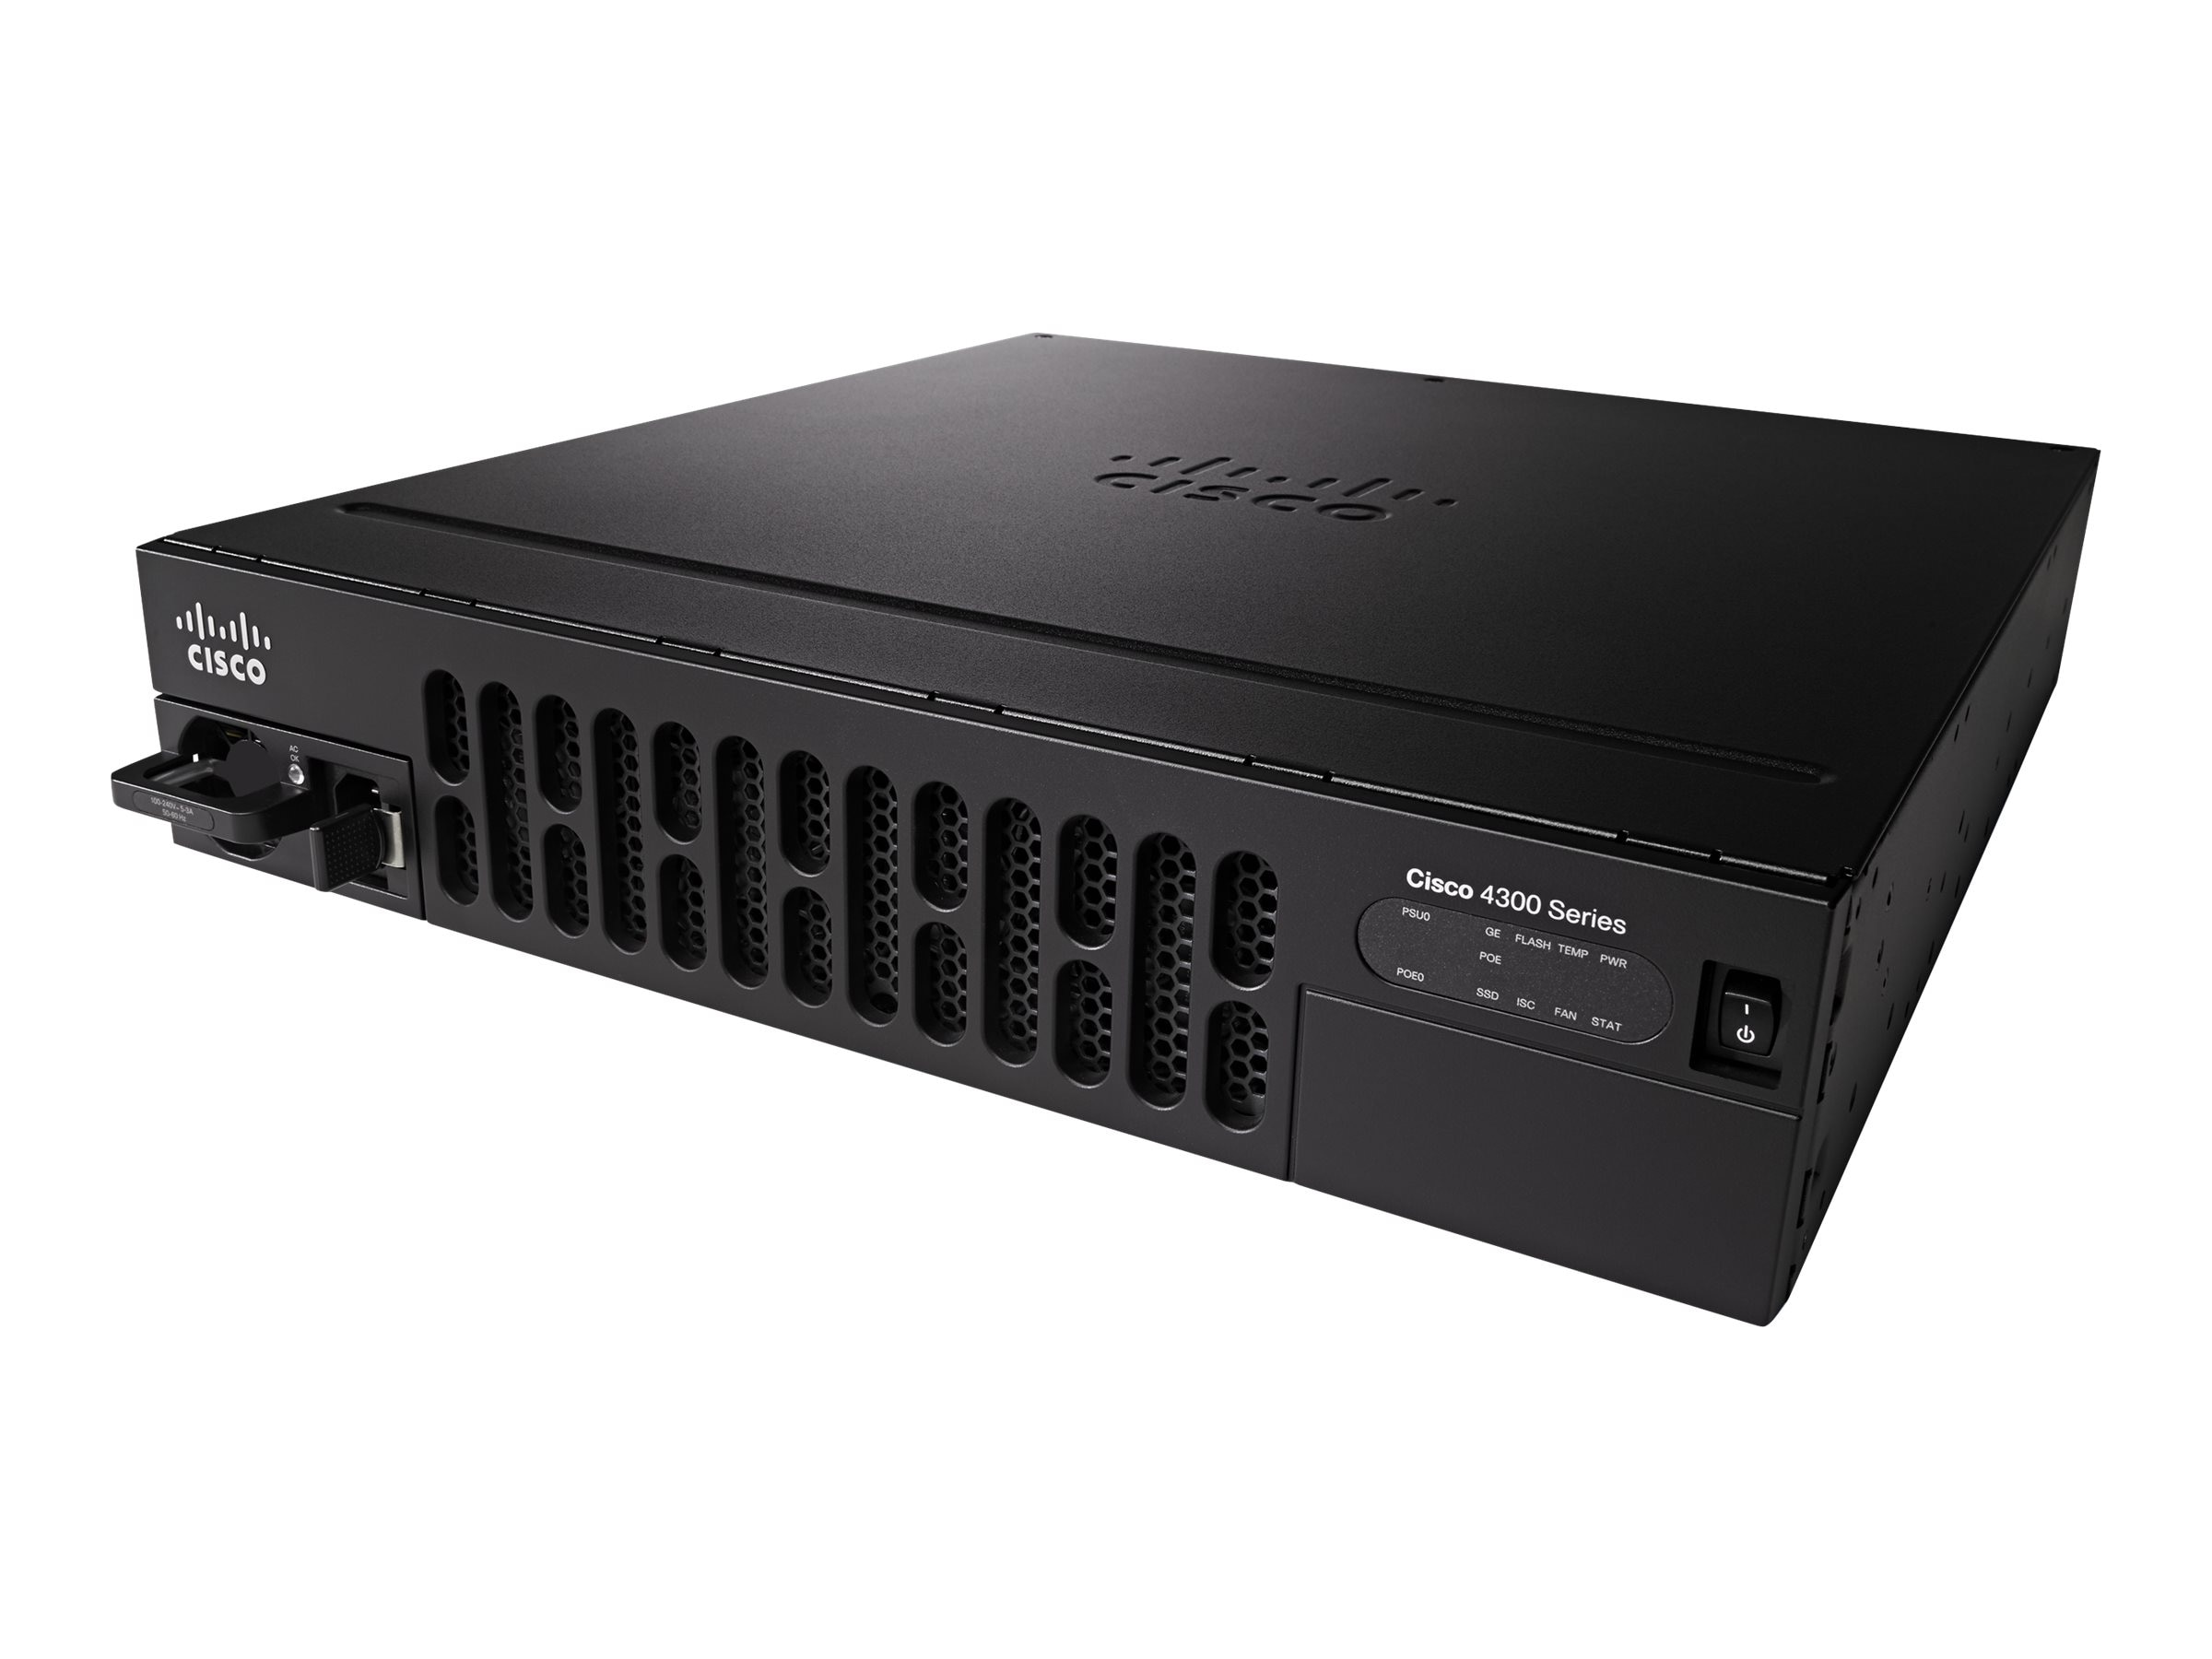 Cisco SR 4351 with 3 onboard GE, 3 NIM slots, 1 ISC slot, 2 SM slots, 4 GB Flash Memory default, 4 GB DRAM, ISR4351/K9, 18010784, Network Routers